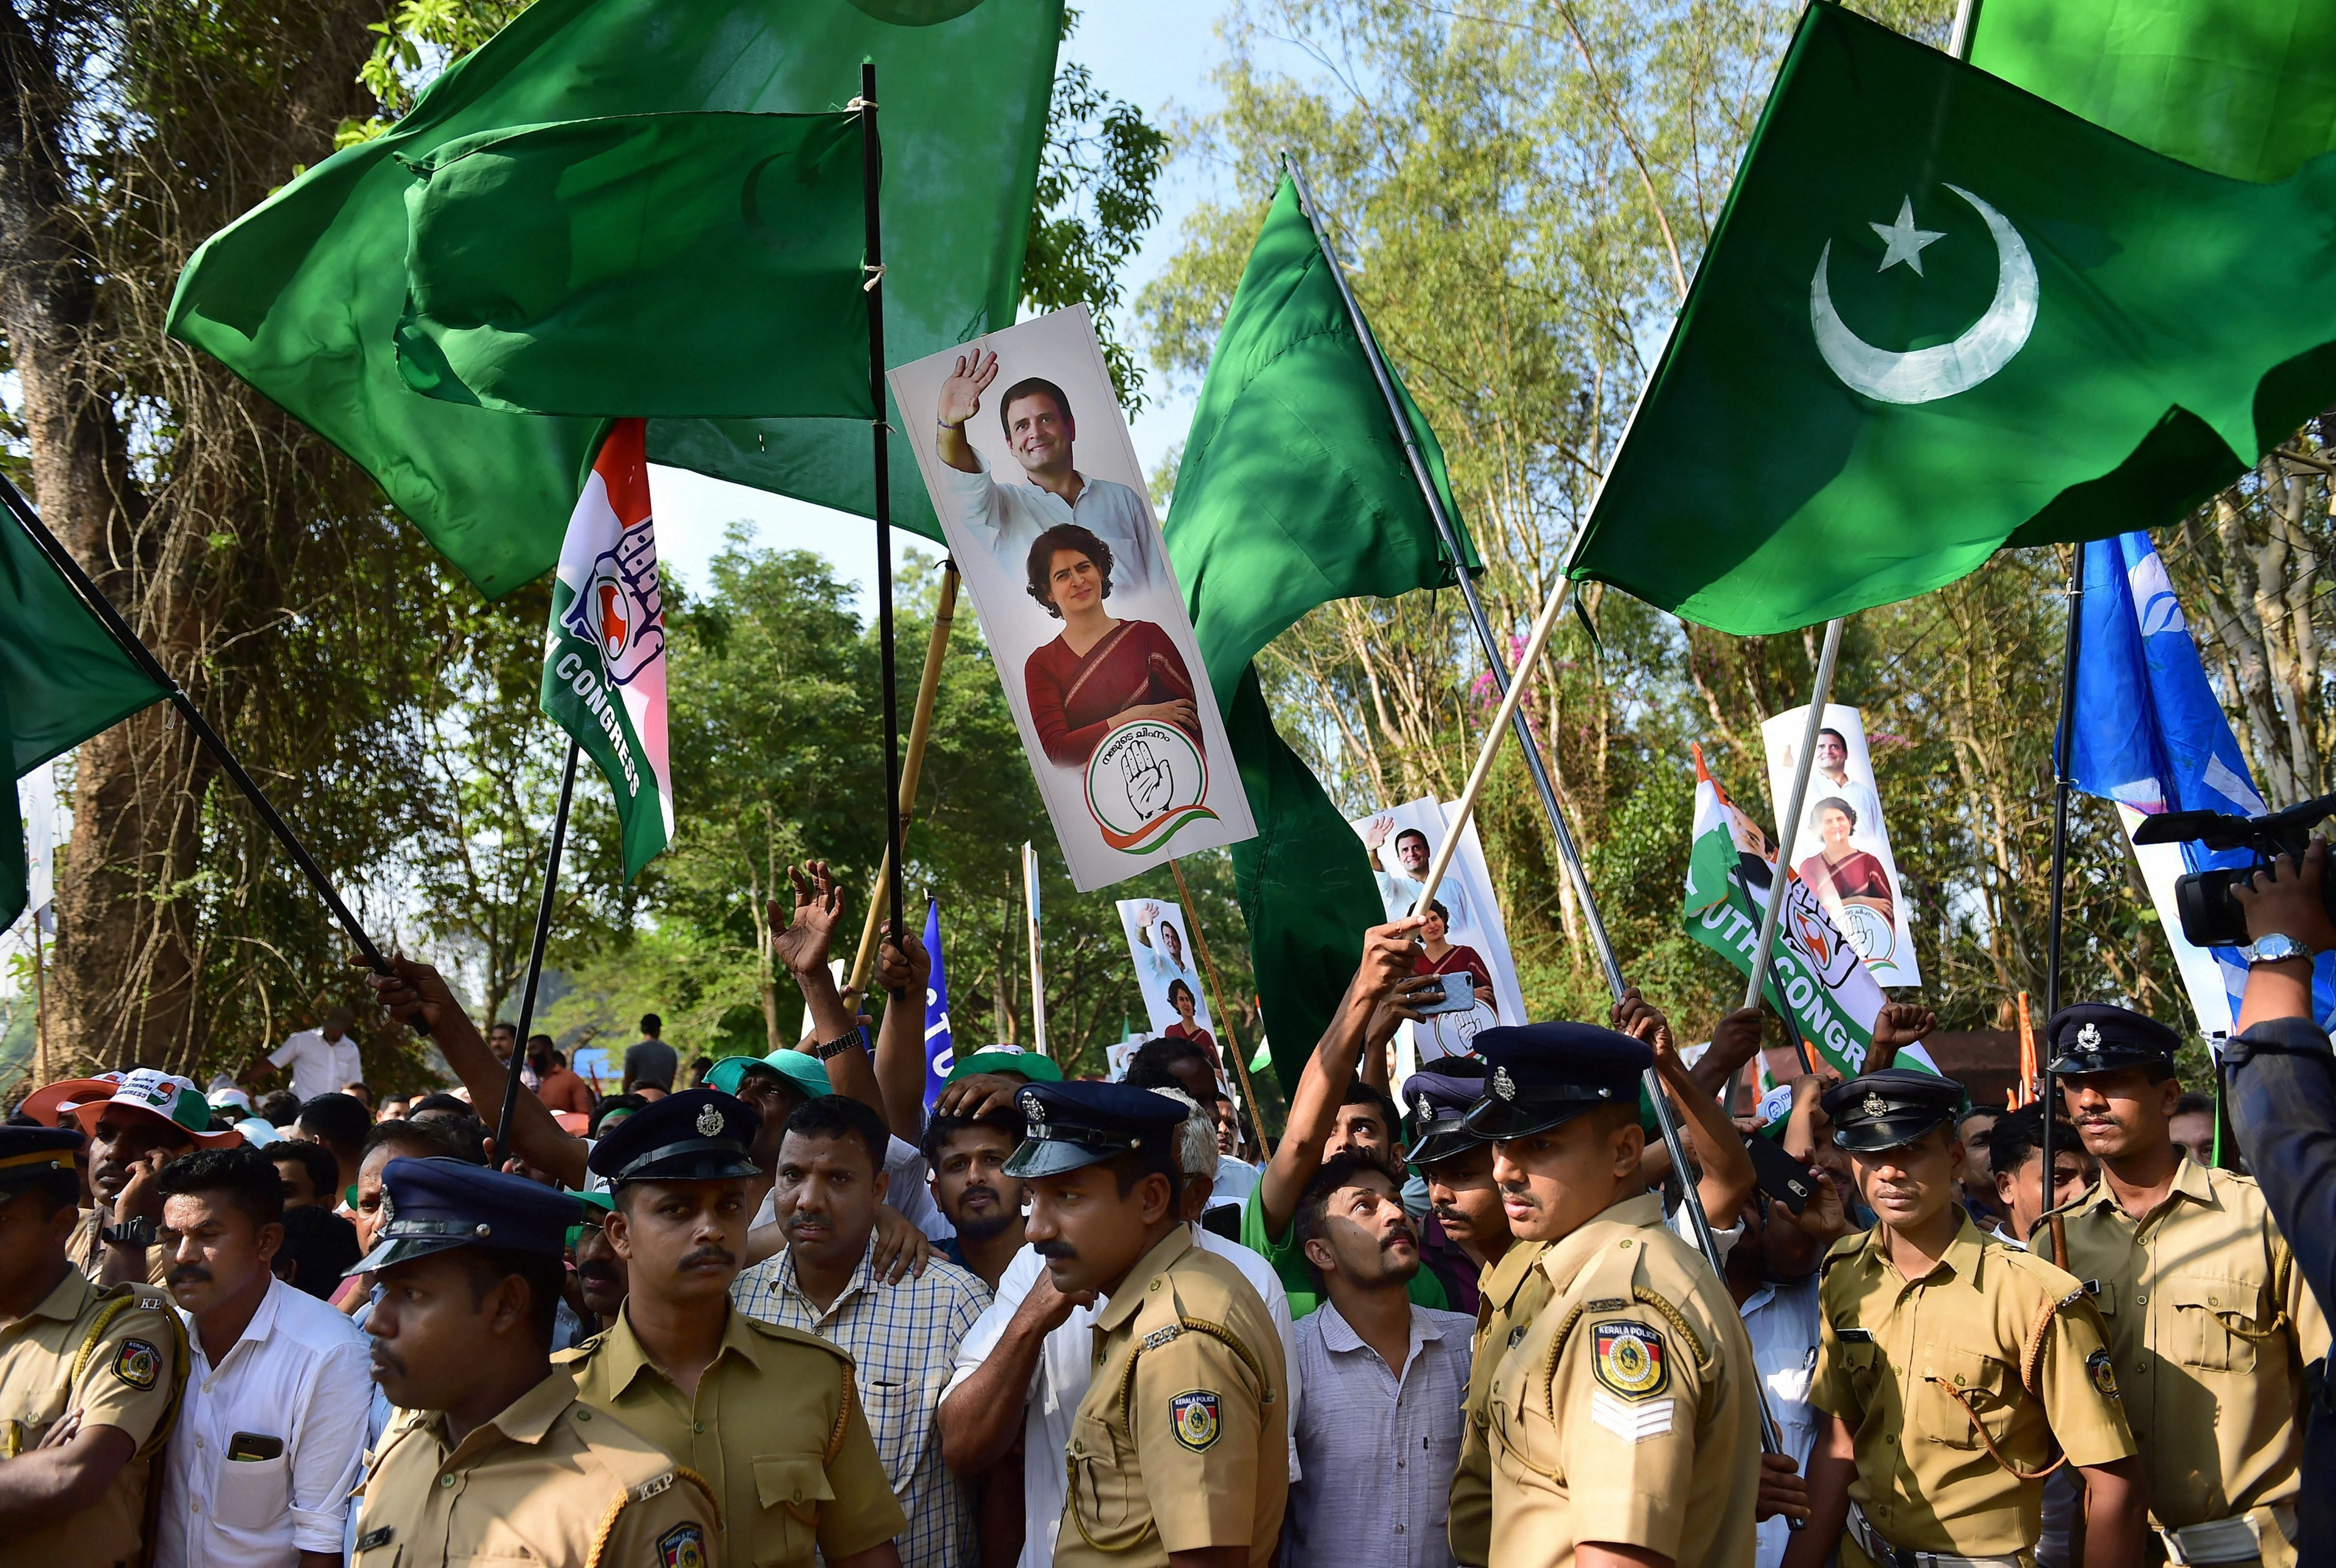 Indian Union Muslim League (IUML) supporters, with green flags, join supporters of Congress as they wave flags prior to the filing of nomination papers by Congress President Rahul Gandhi, in Wayanad - PTI